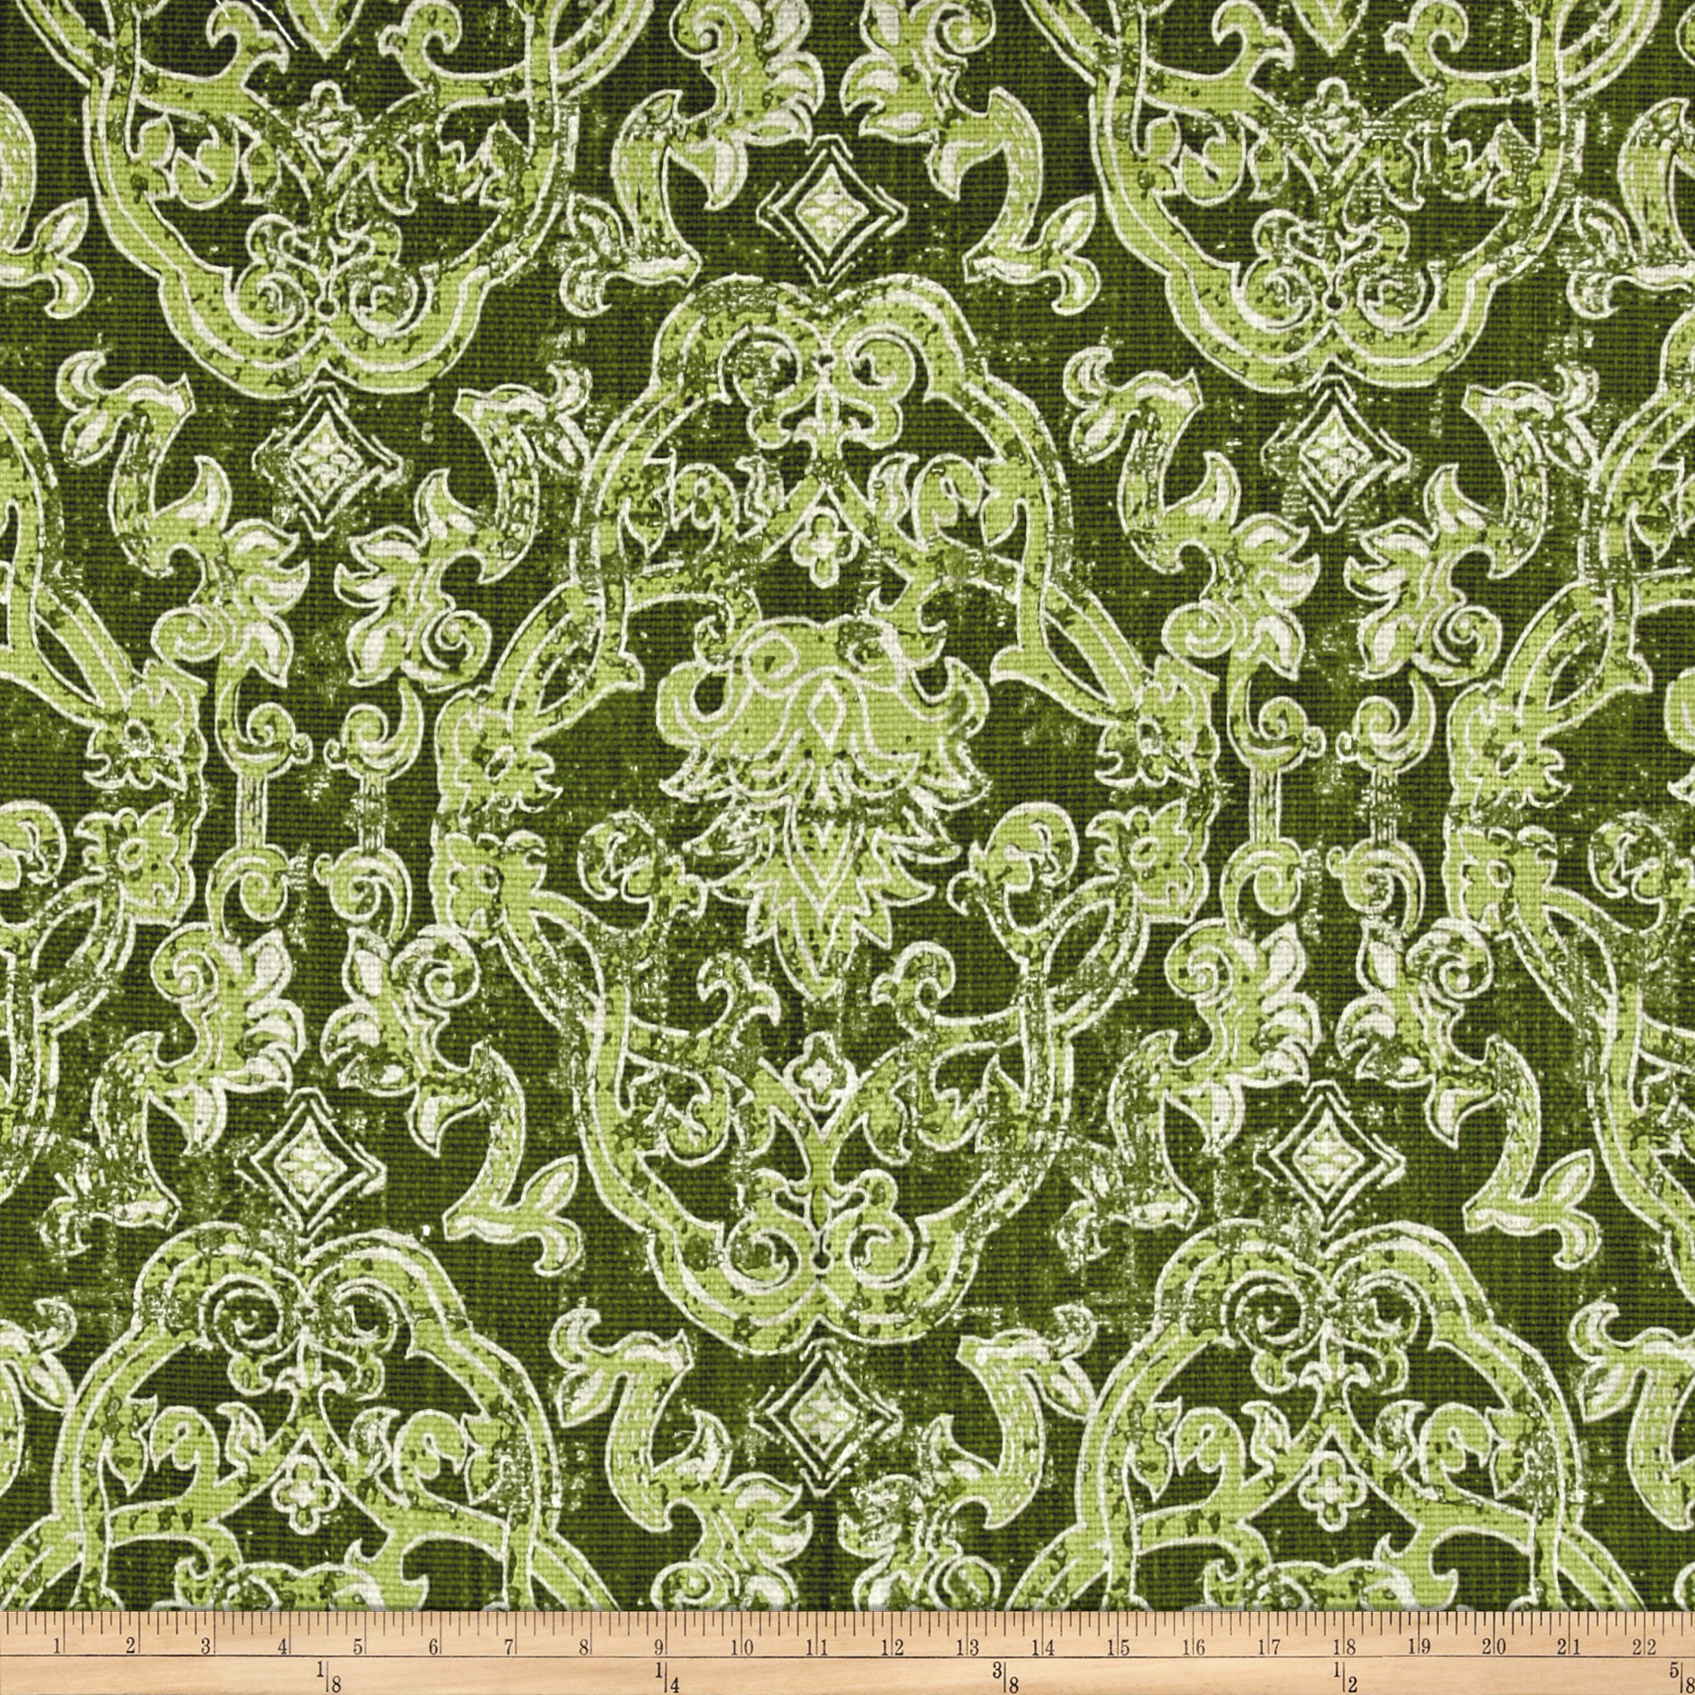 Lacefield Contessa Basketweave Olive Beck Fabric by Lacefield in USA